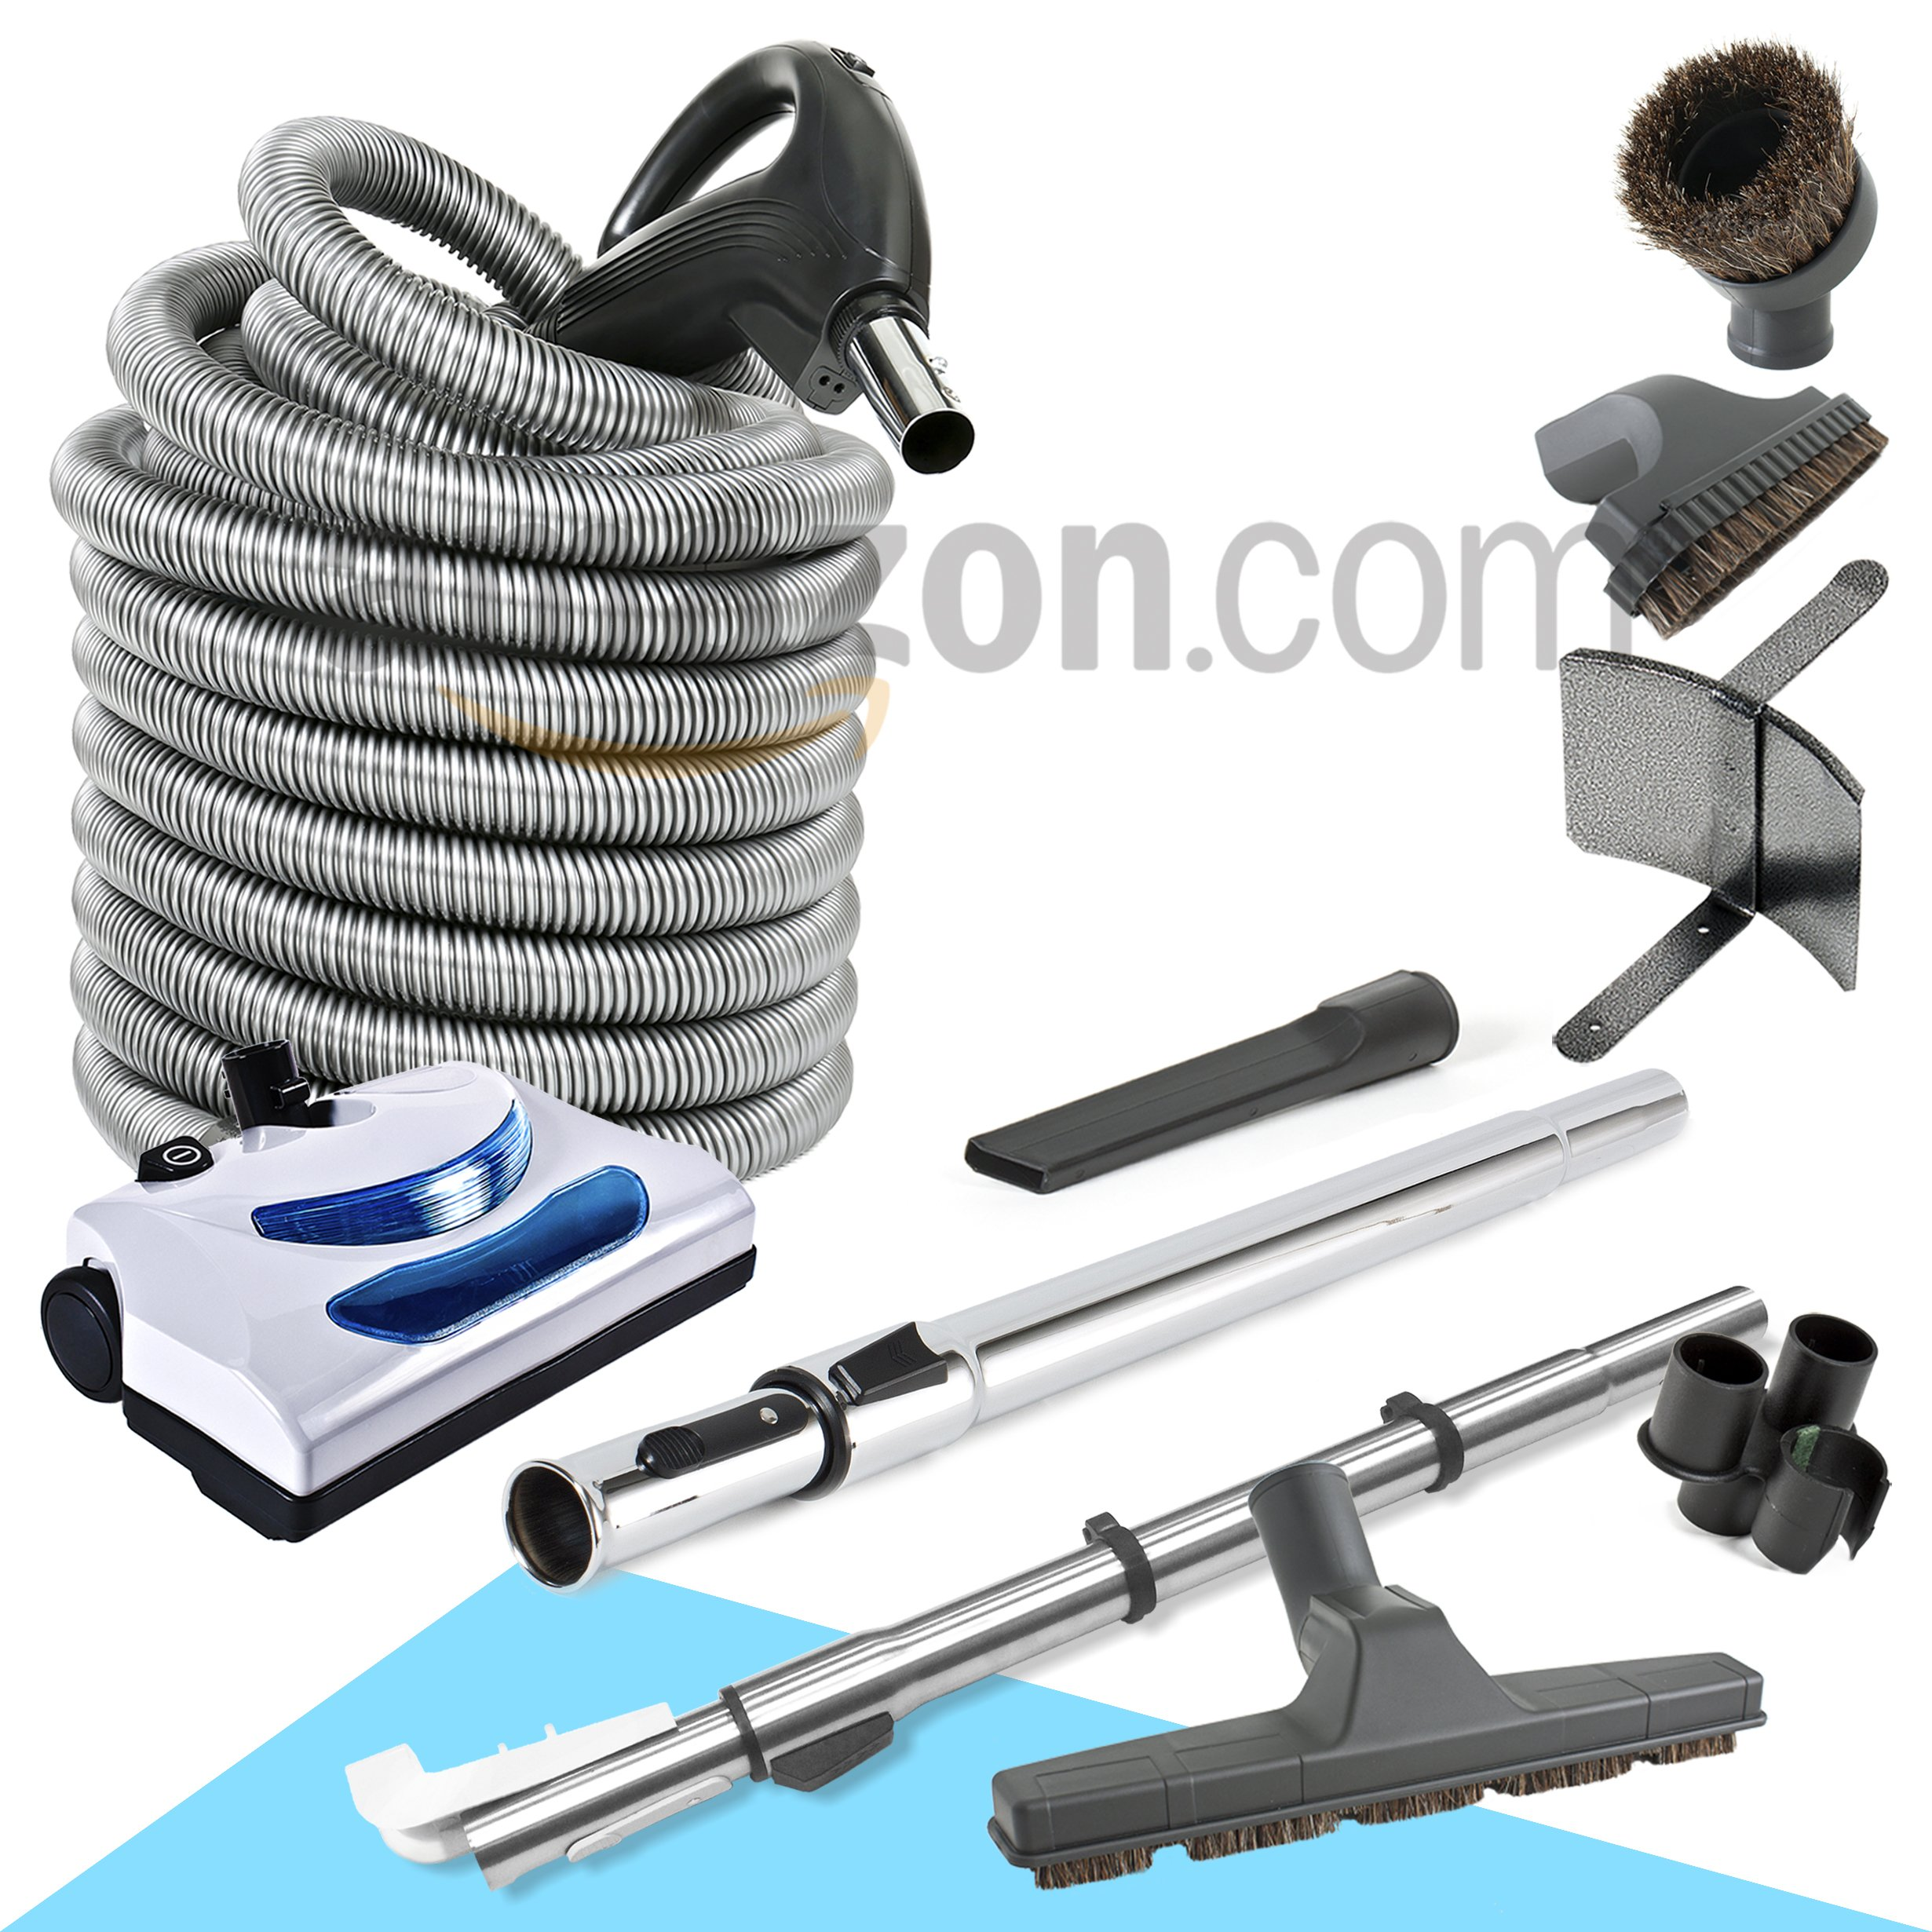 Cana-Vac Value Power Kit 30 Foot 110V/24V -- Exclusive Listing by Johnston's Vac & Sew